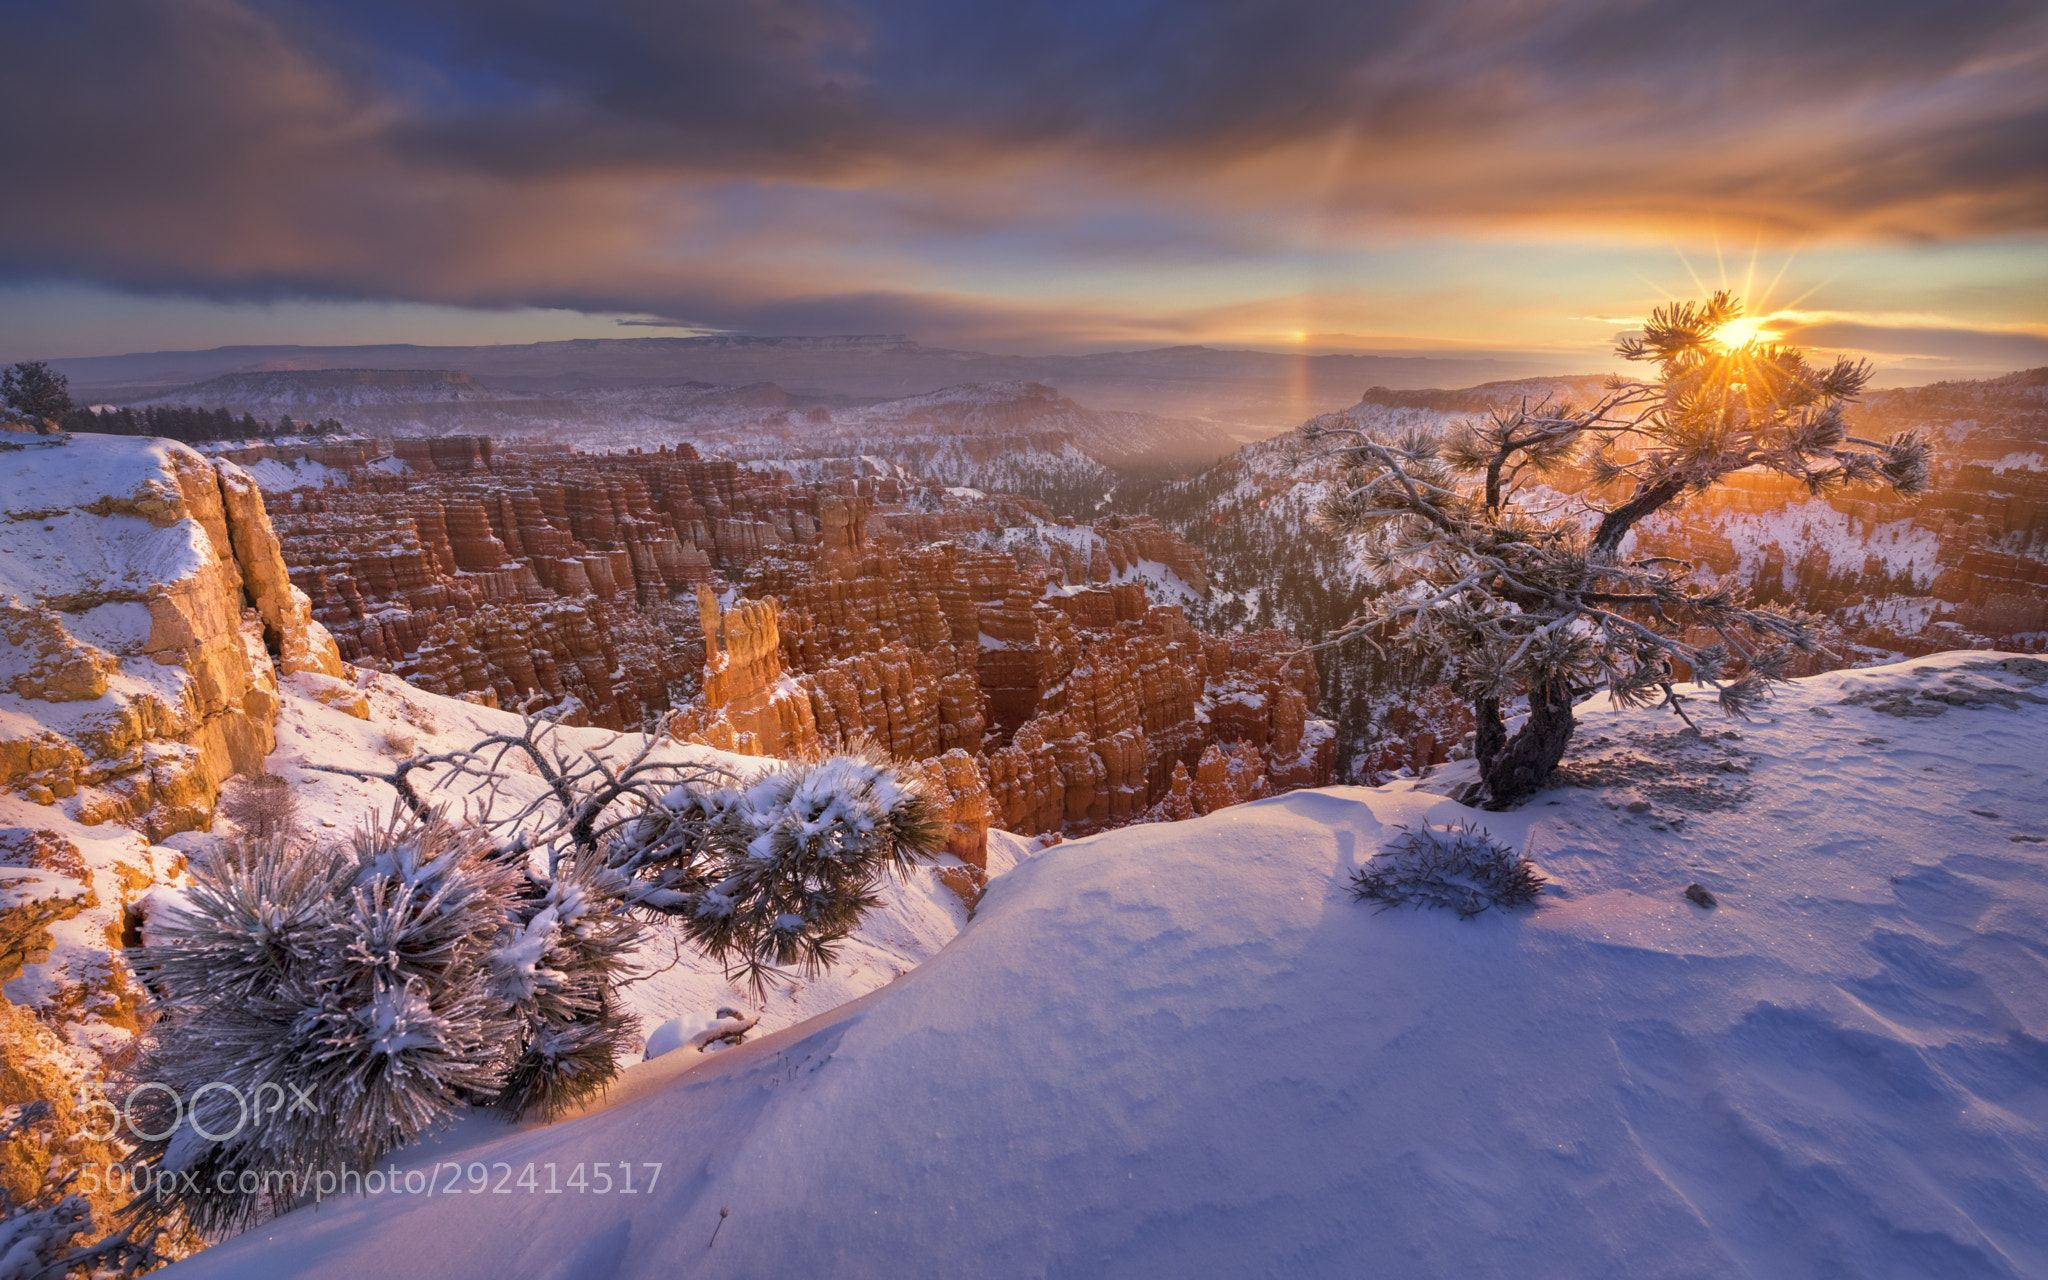 Landscape Photgraphy Love Passion Eye Photo Nature Beautiful Sky Earth Tree Day Trips National Parks Trip One Day Trip